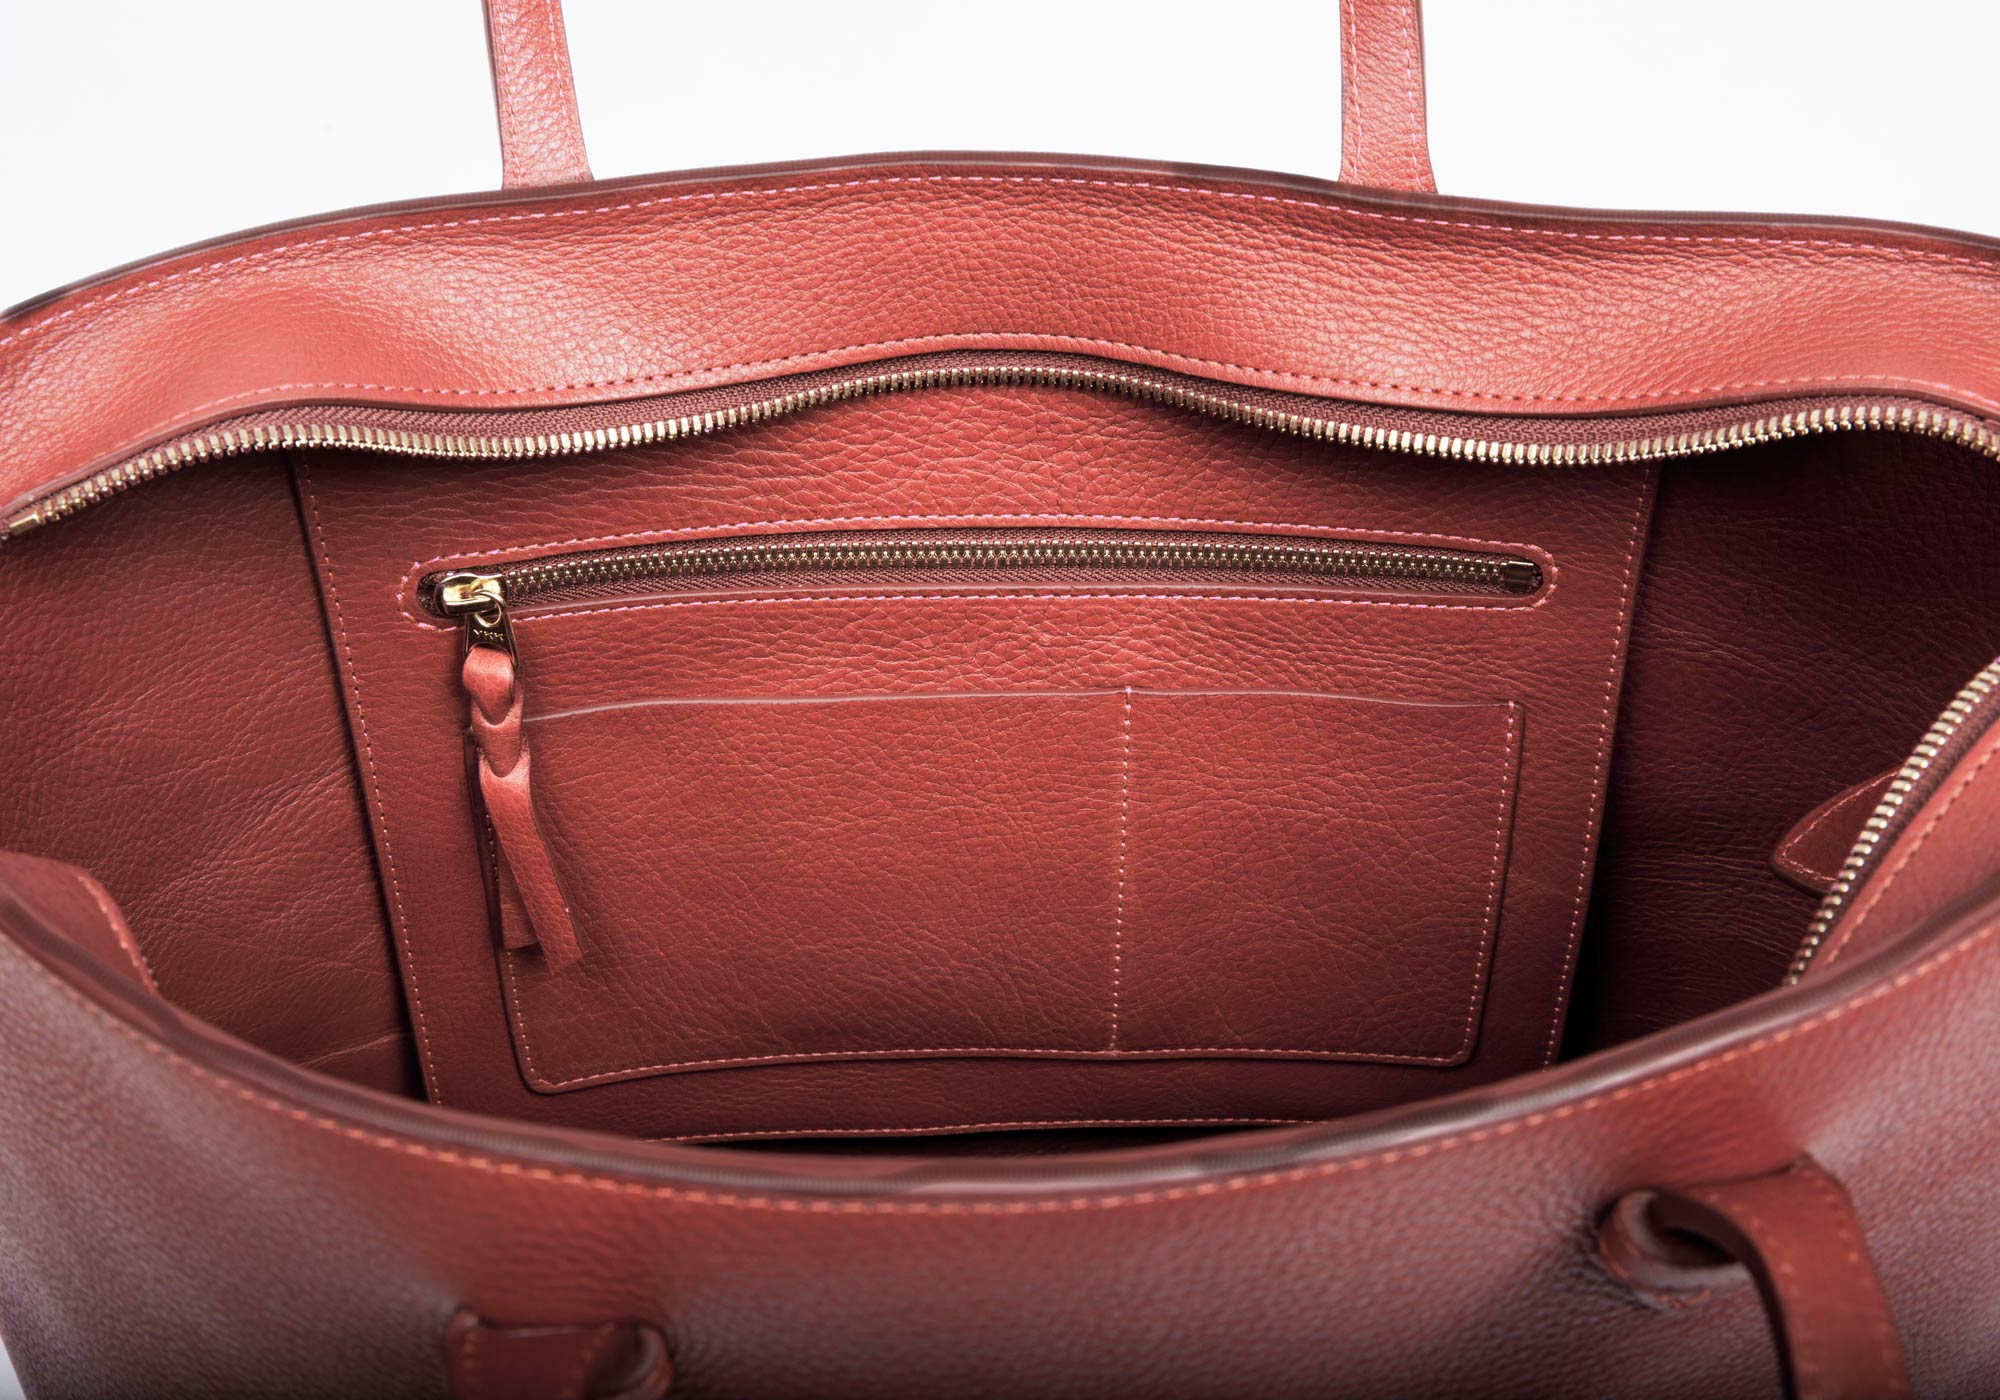 No. 12 Leather Tote Rosewood